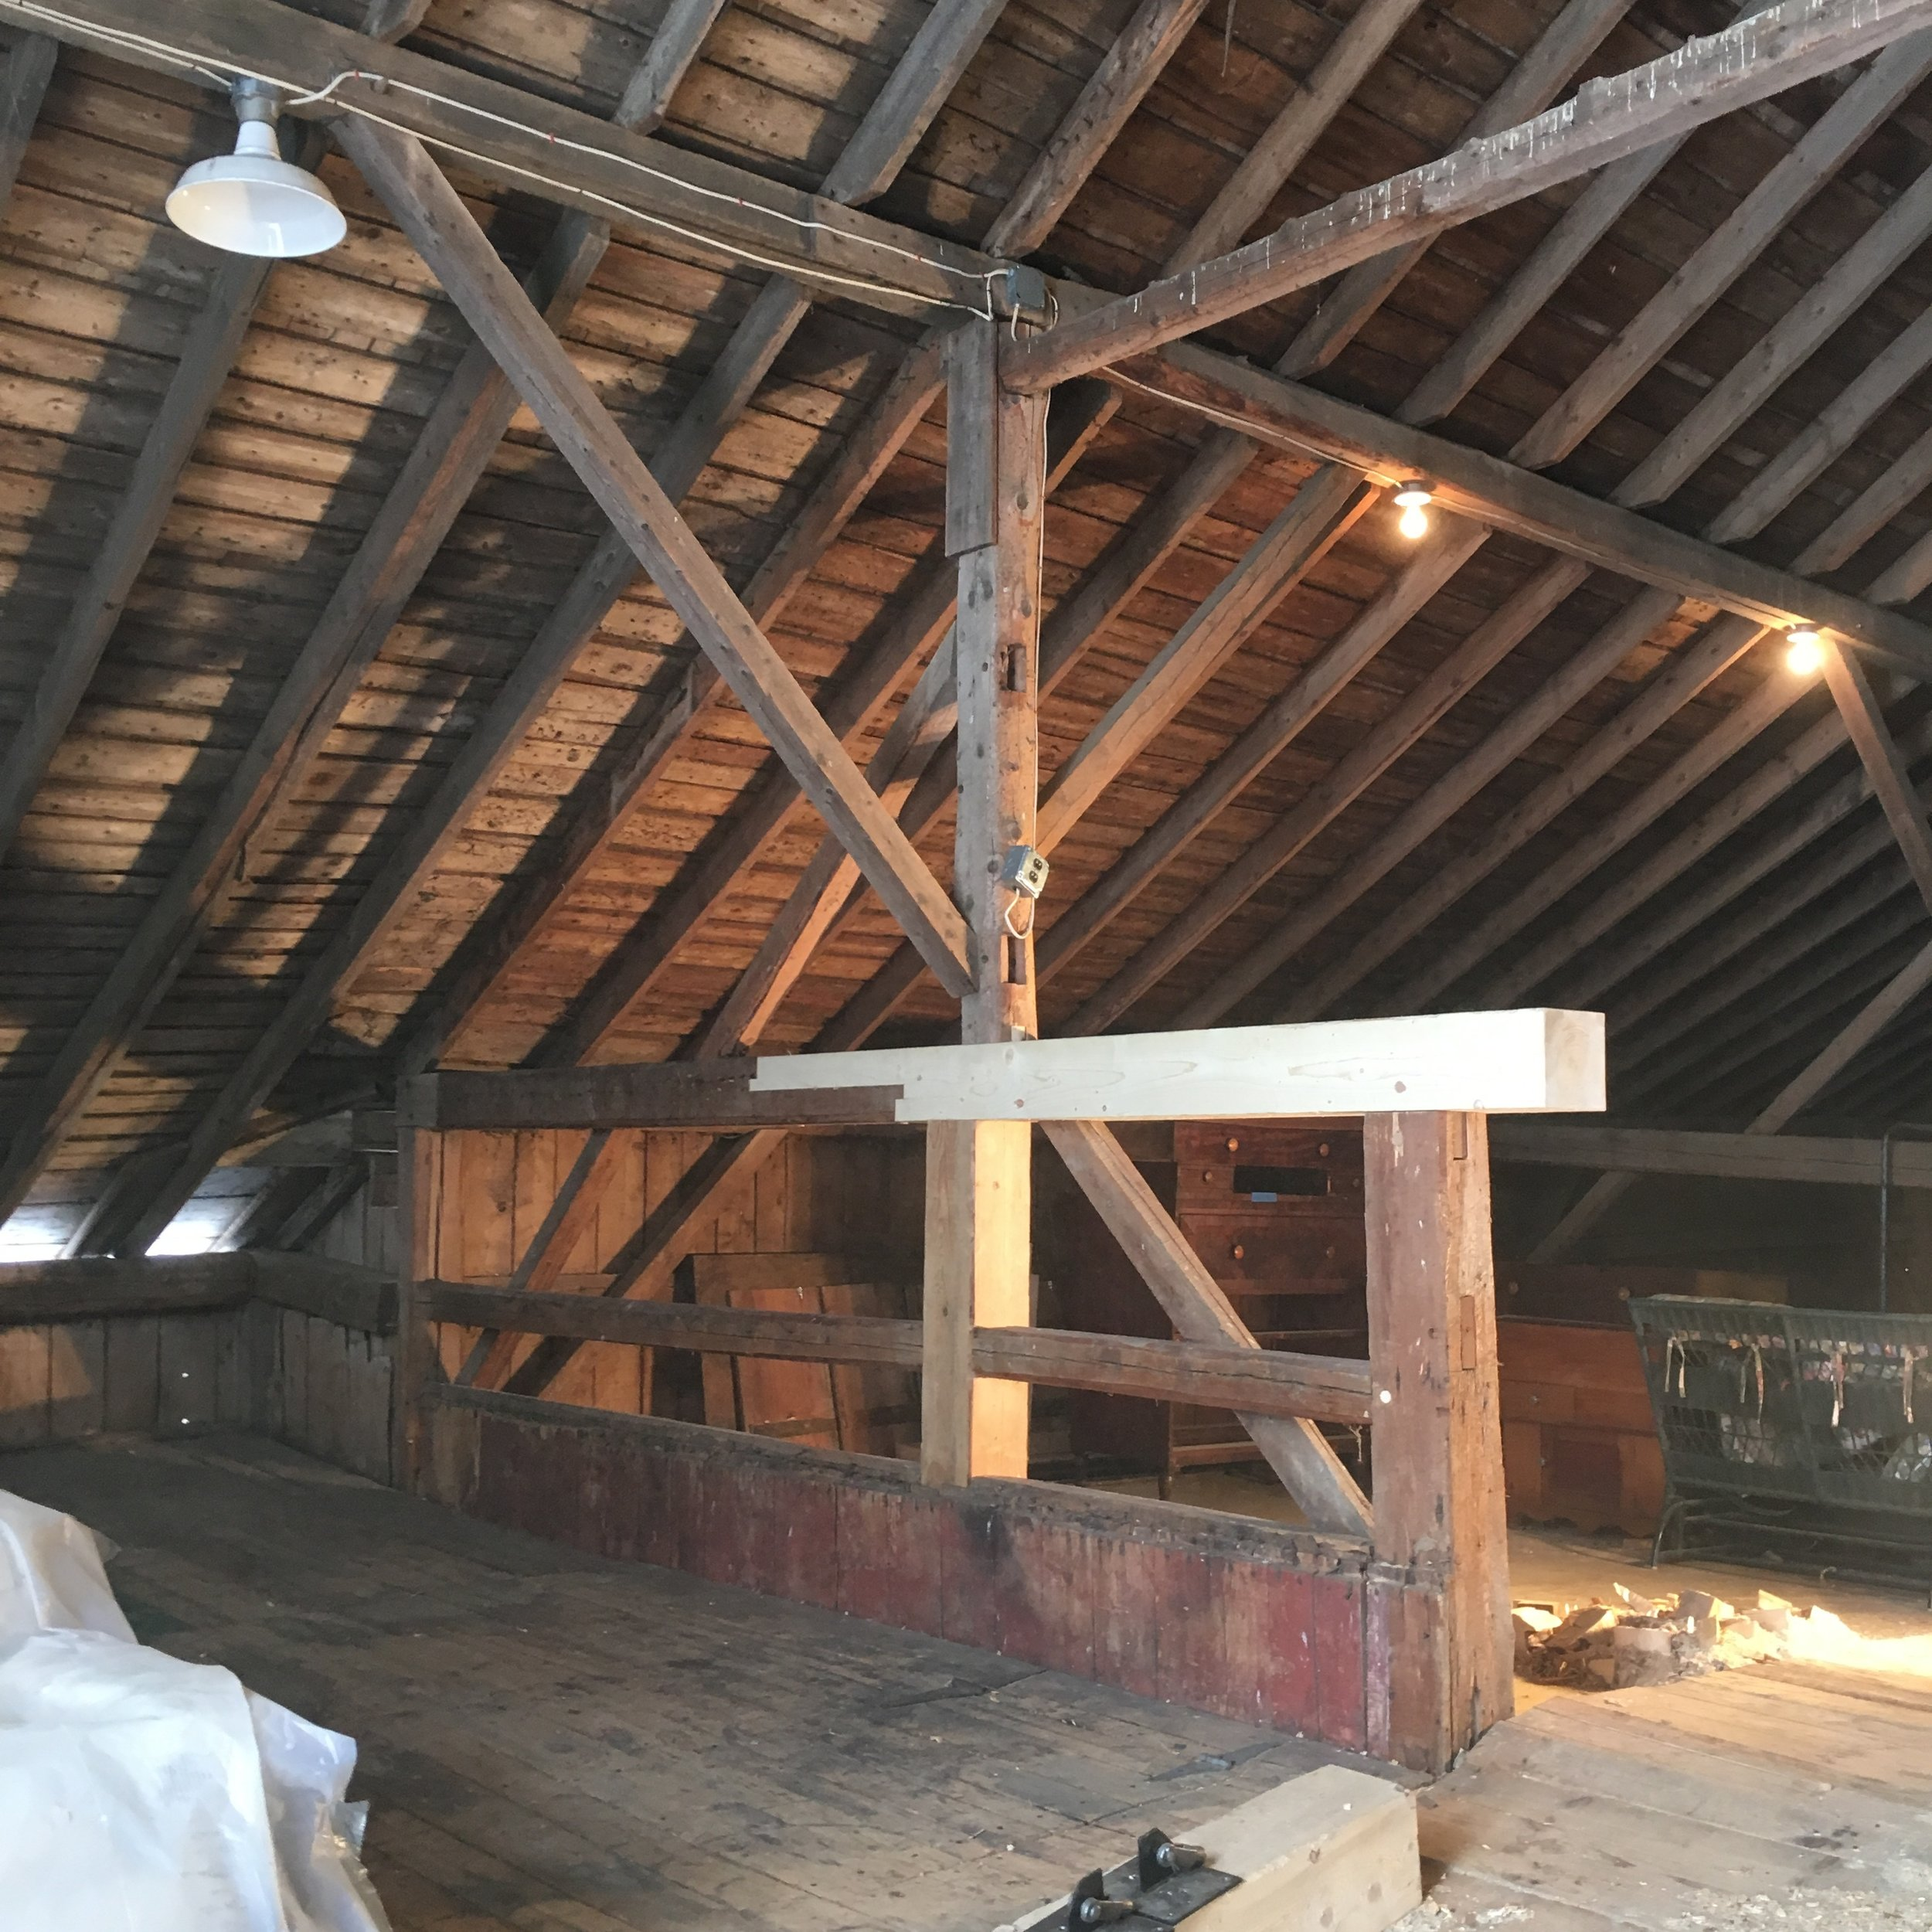 A typical repair to the barn haymow, with a scarfed end replacing a piece which had broken in its midsection. Purlin post is now adequately supported with an intermediate post, and running the replacement 1' into the aisle allowed for stronger joinery at the aisle post.